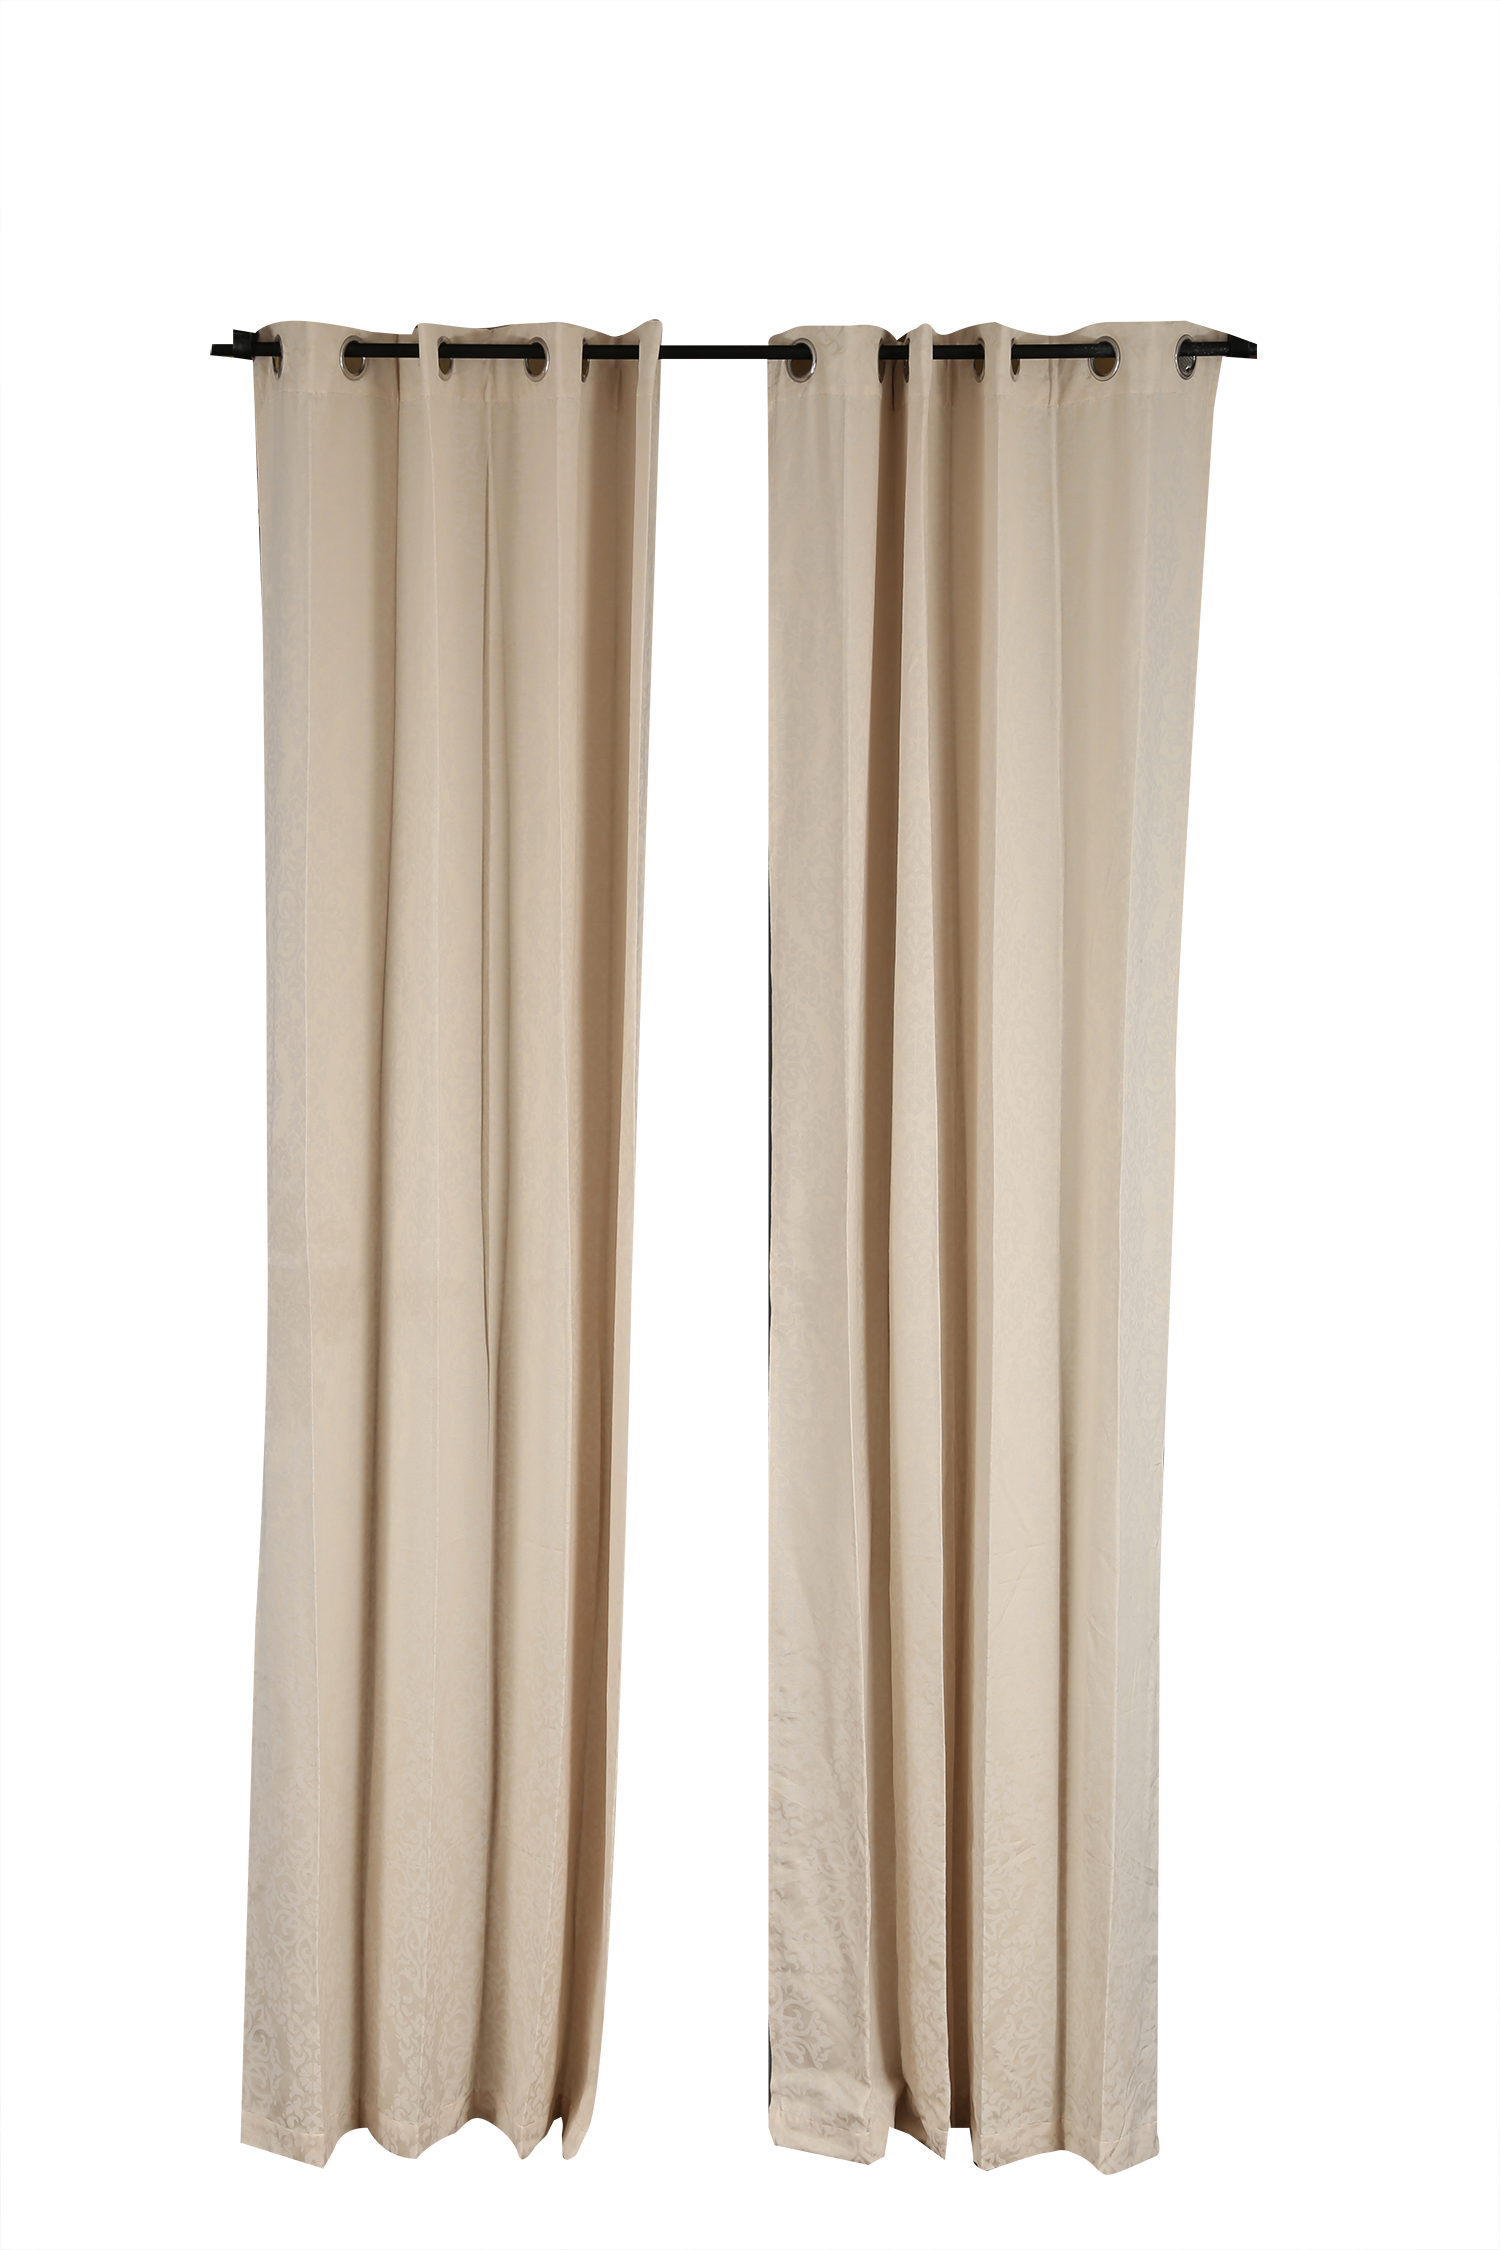 Florina Door Curtain Off Polyester Door Curtains in Off White Colour by Living Essence